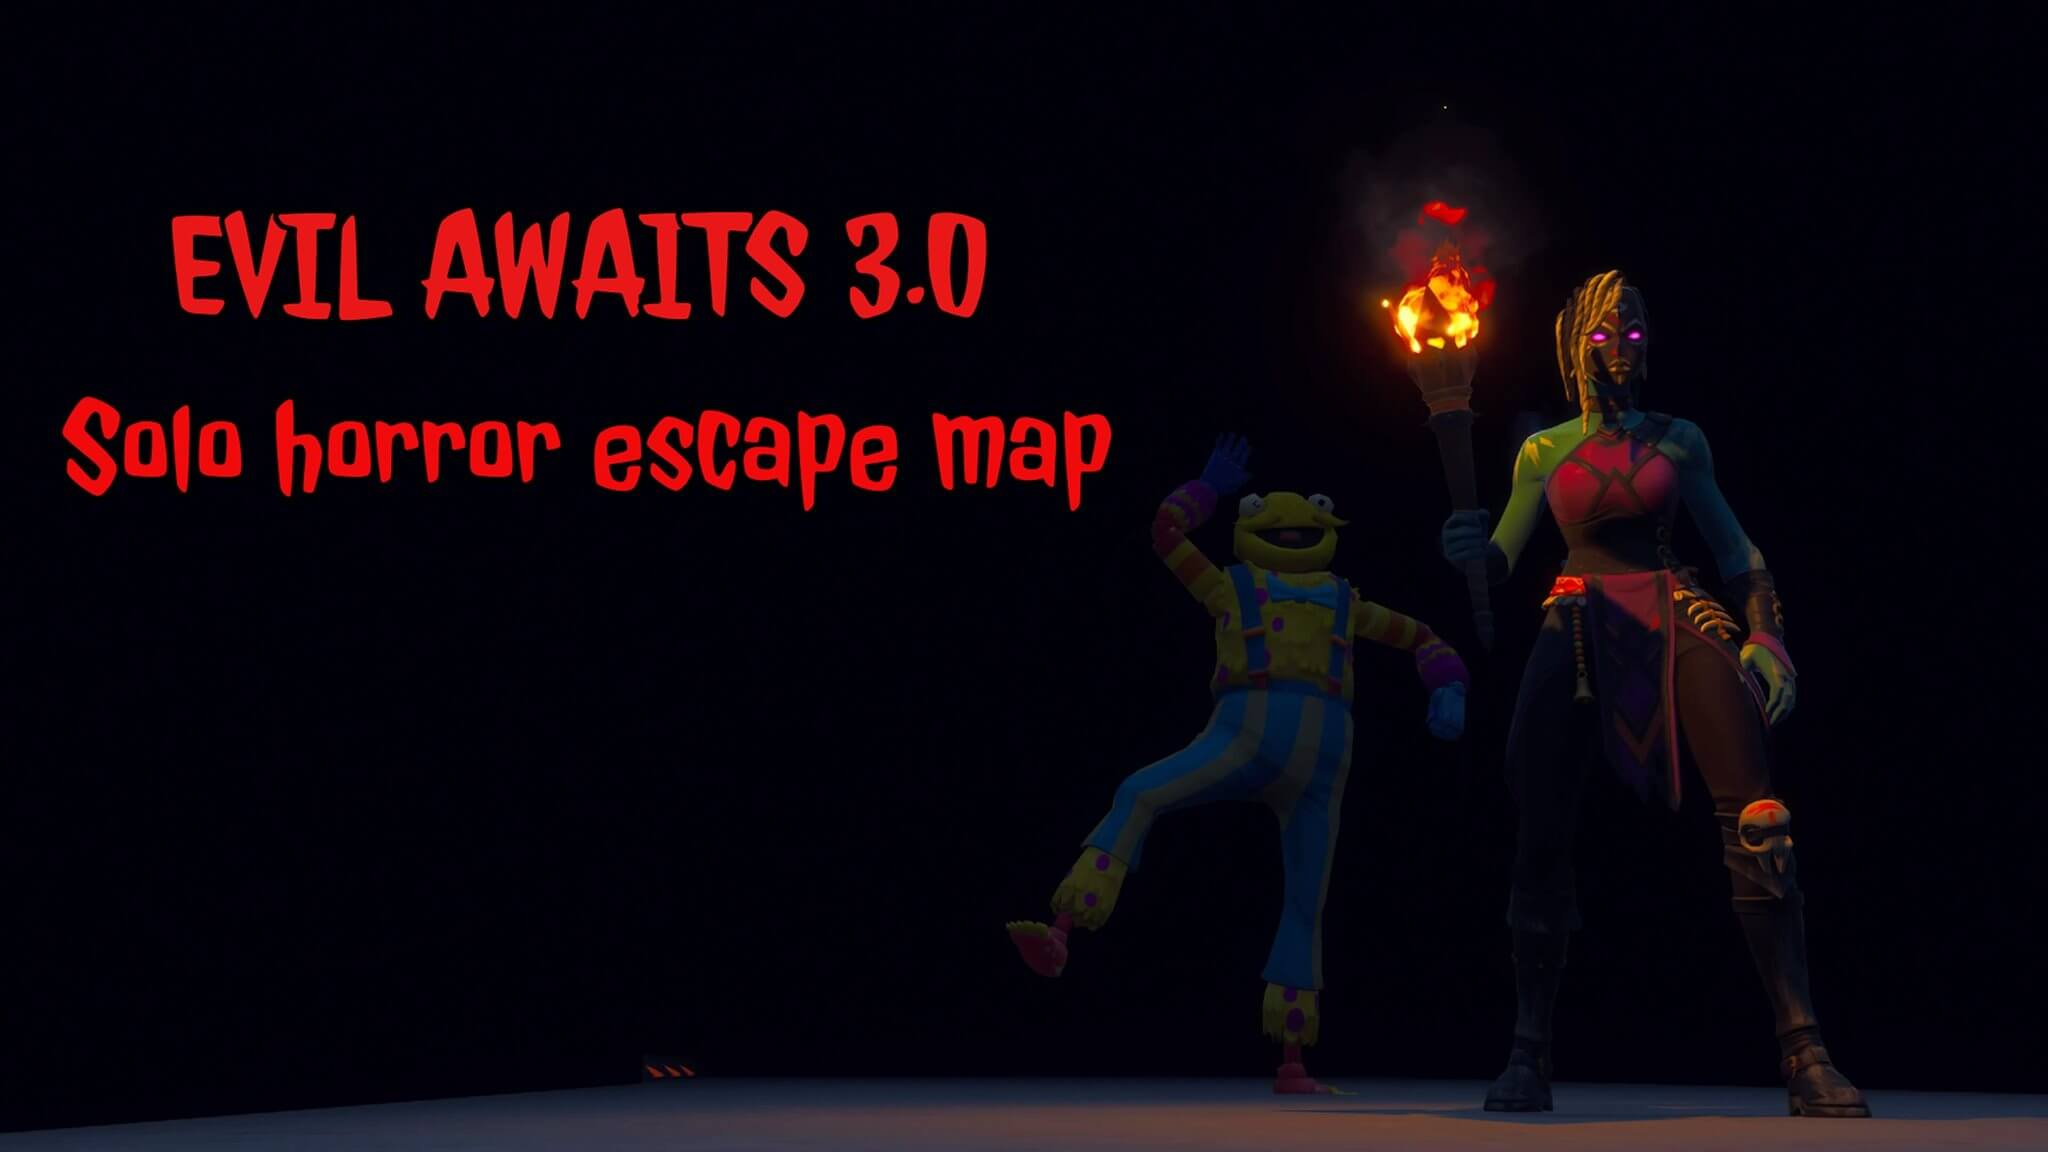 EVIL AWAITS 3.0 (SOLO HORROR ESCAPE MAP)